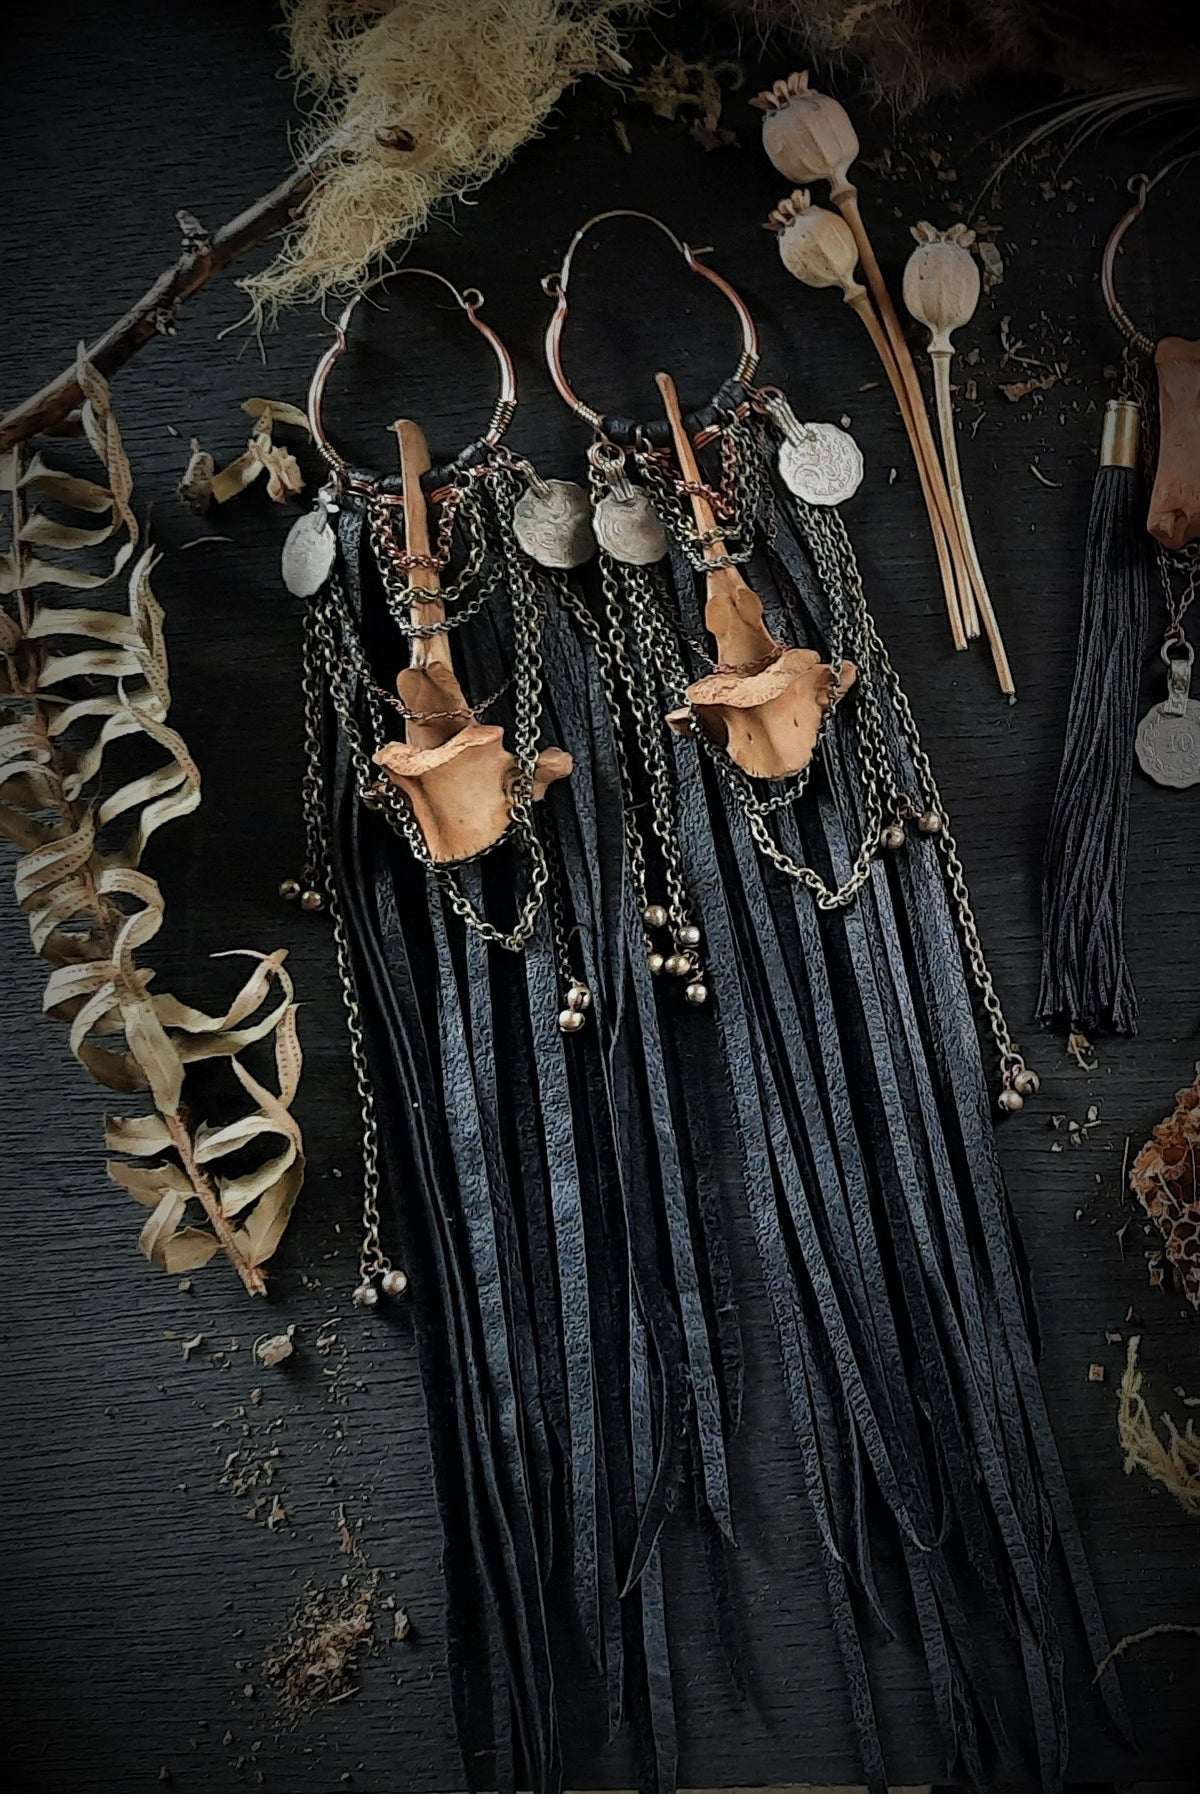 Image of Deer Vertebrae with Leather Fringe and Charms and Chains